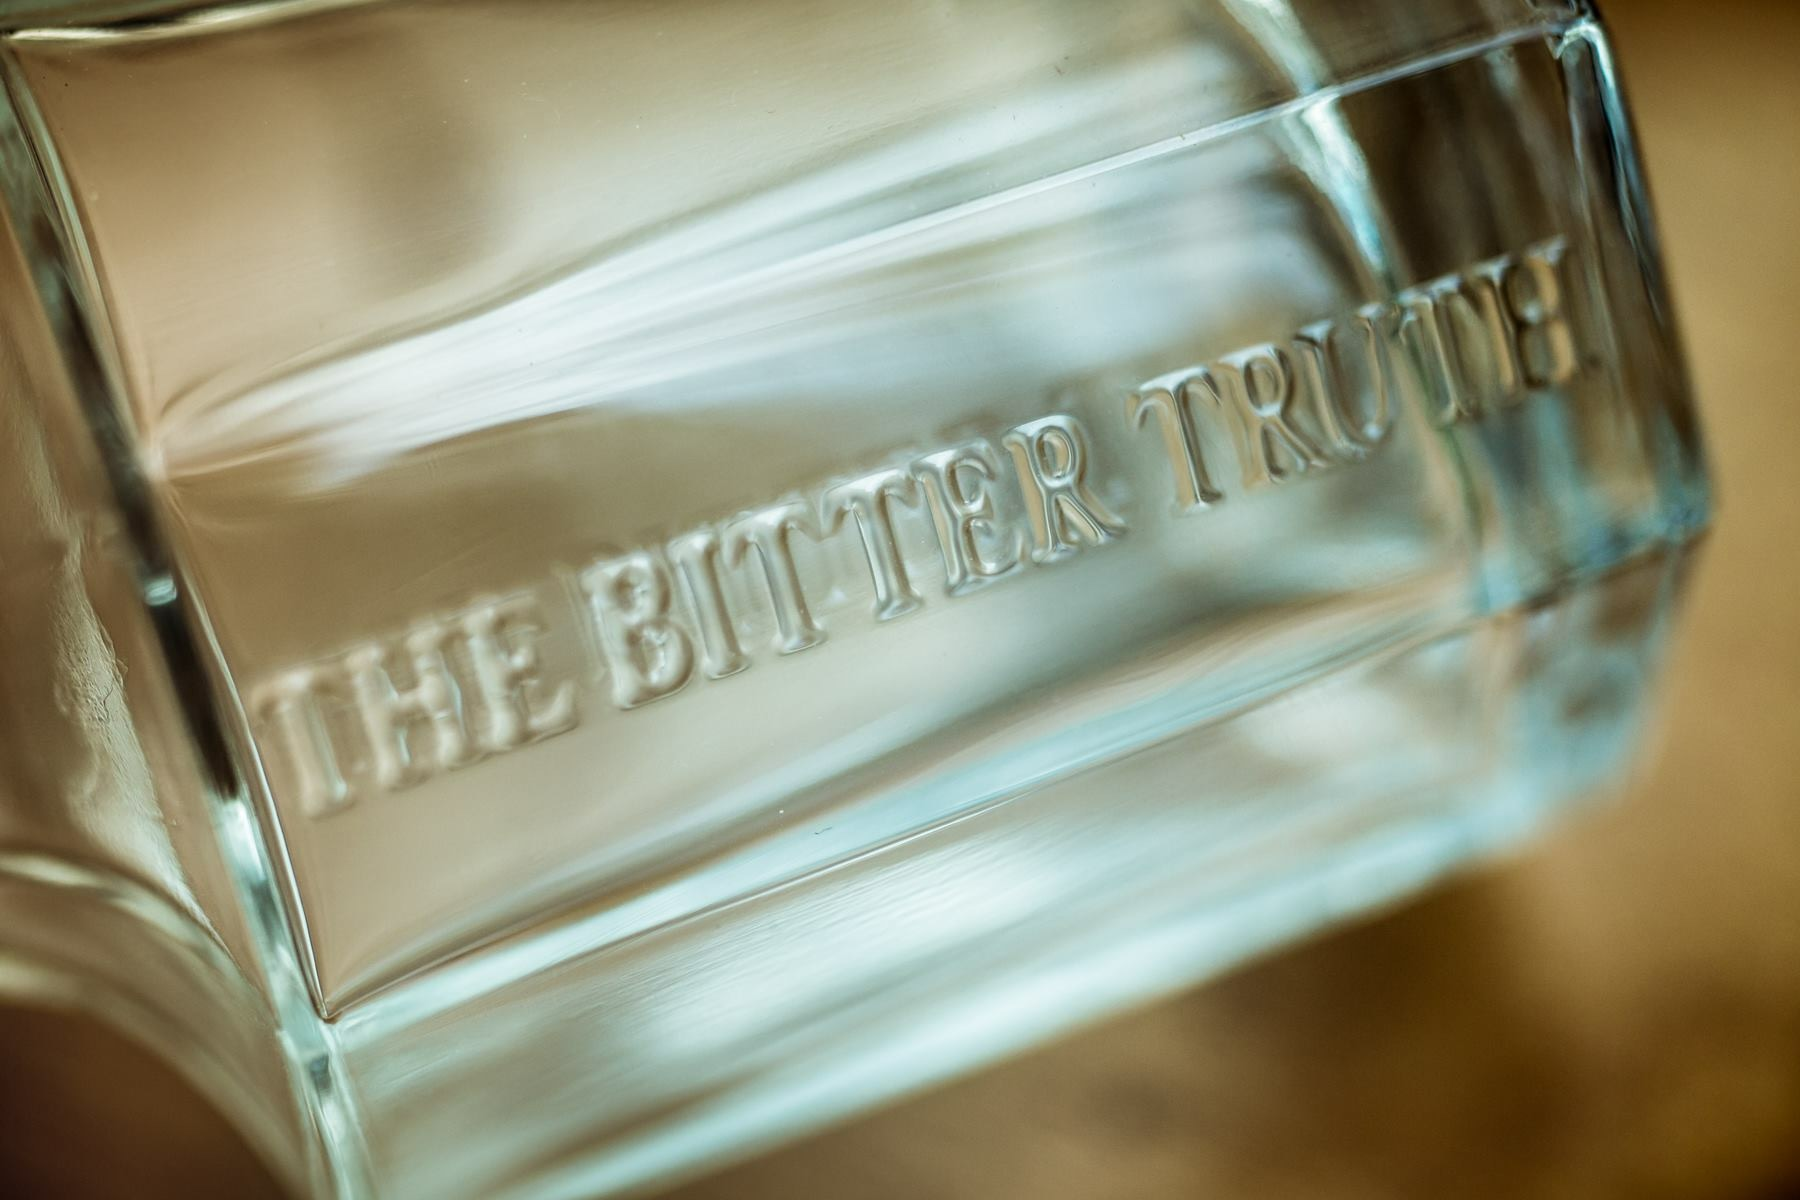 The Bitter Truth 10th anniversary decanter bottle